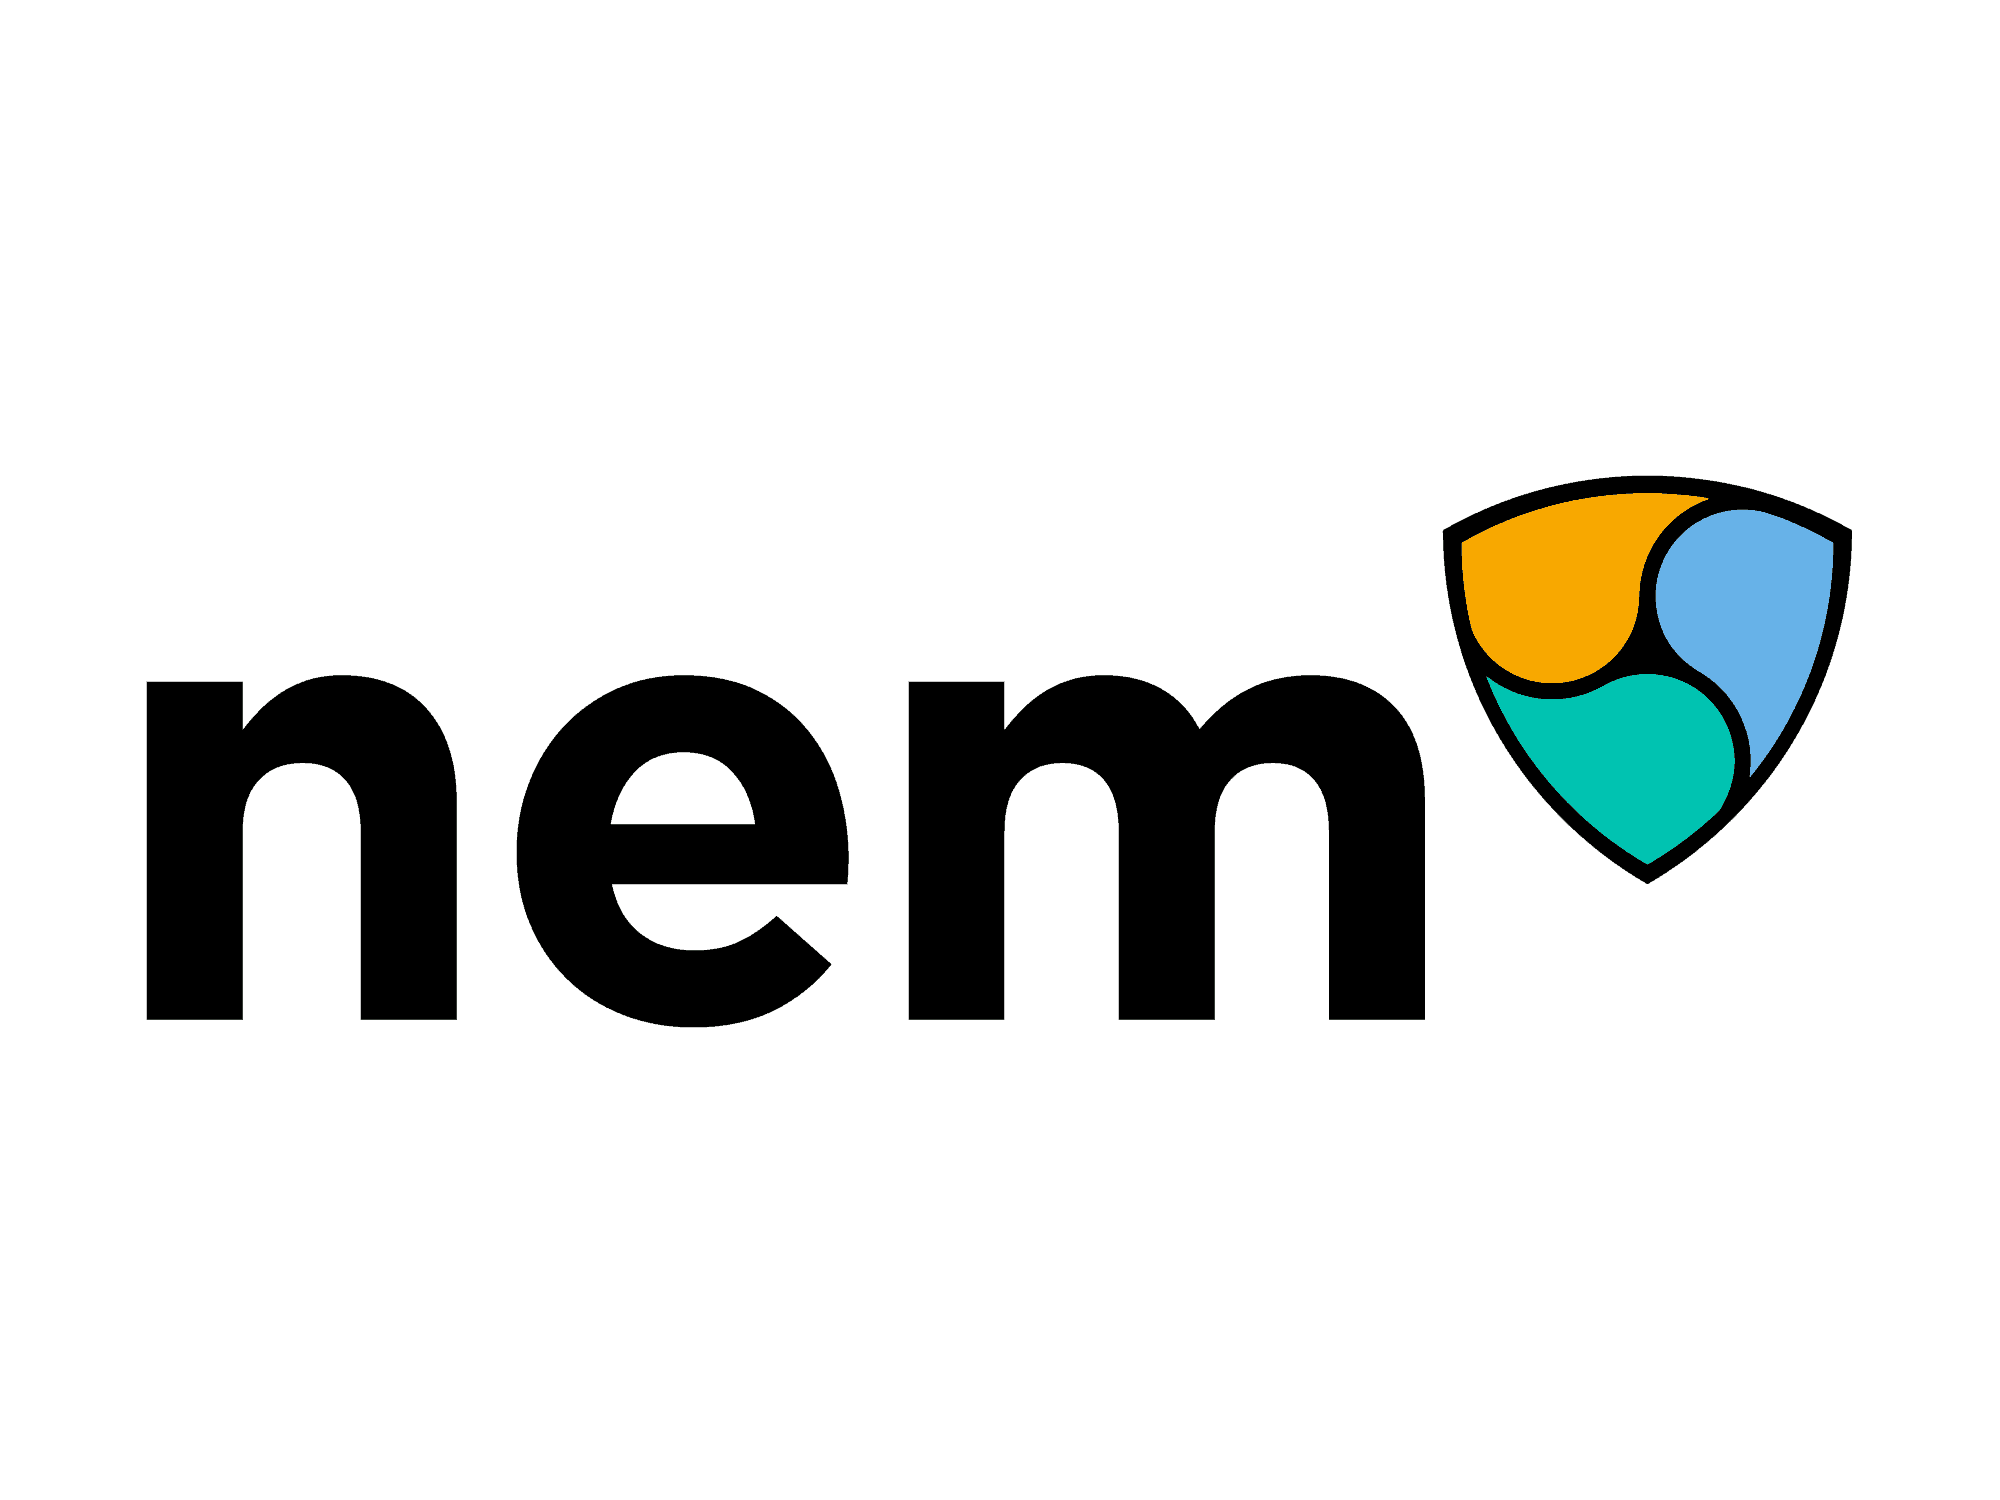 How To Invest In NEM (XEM) - The Crypto For Business